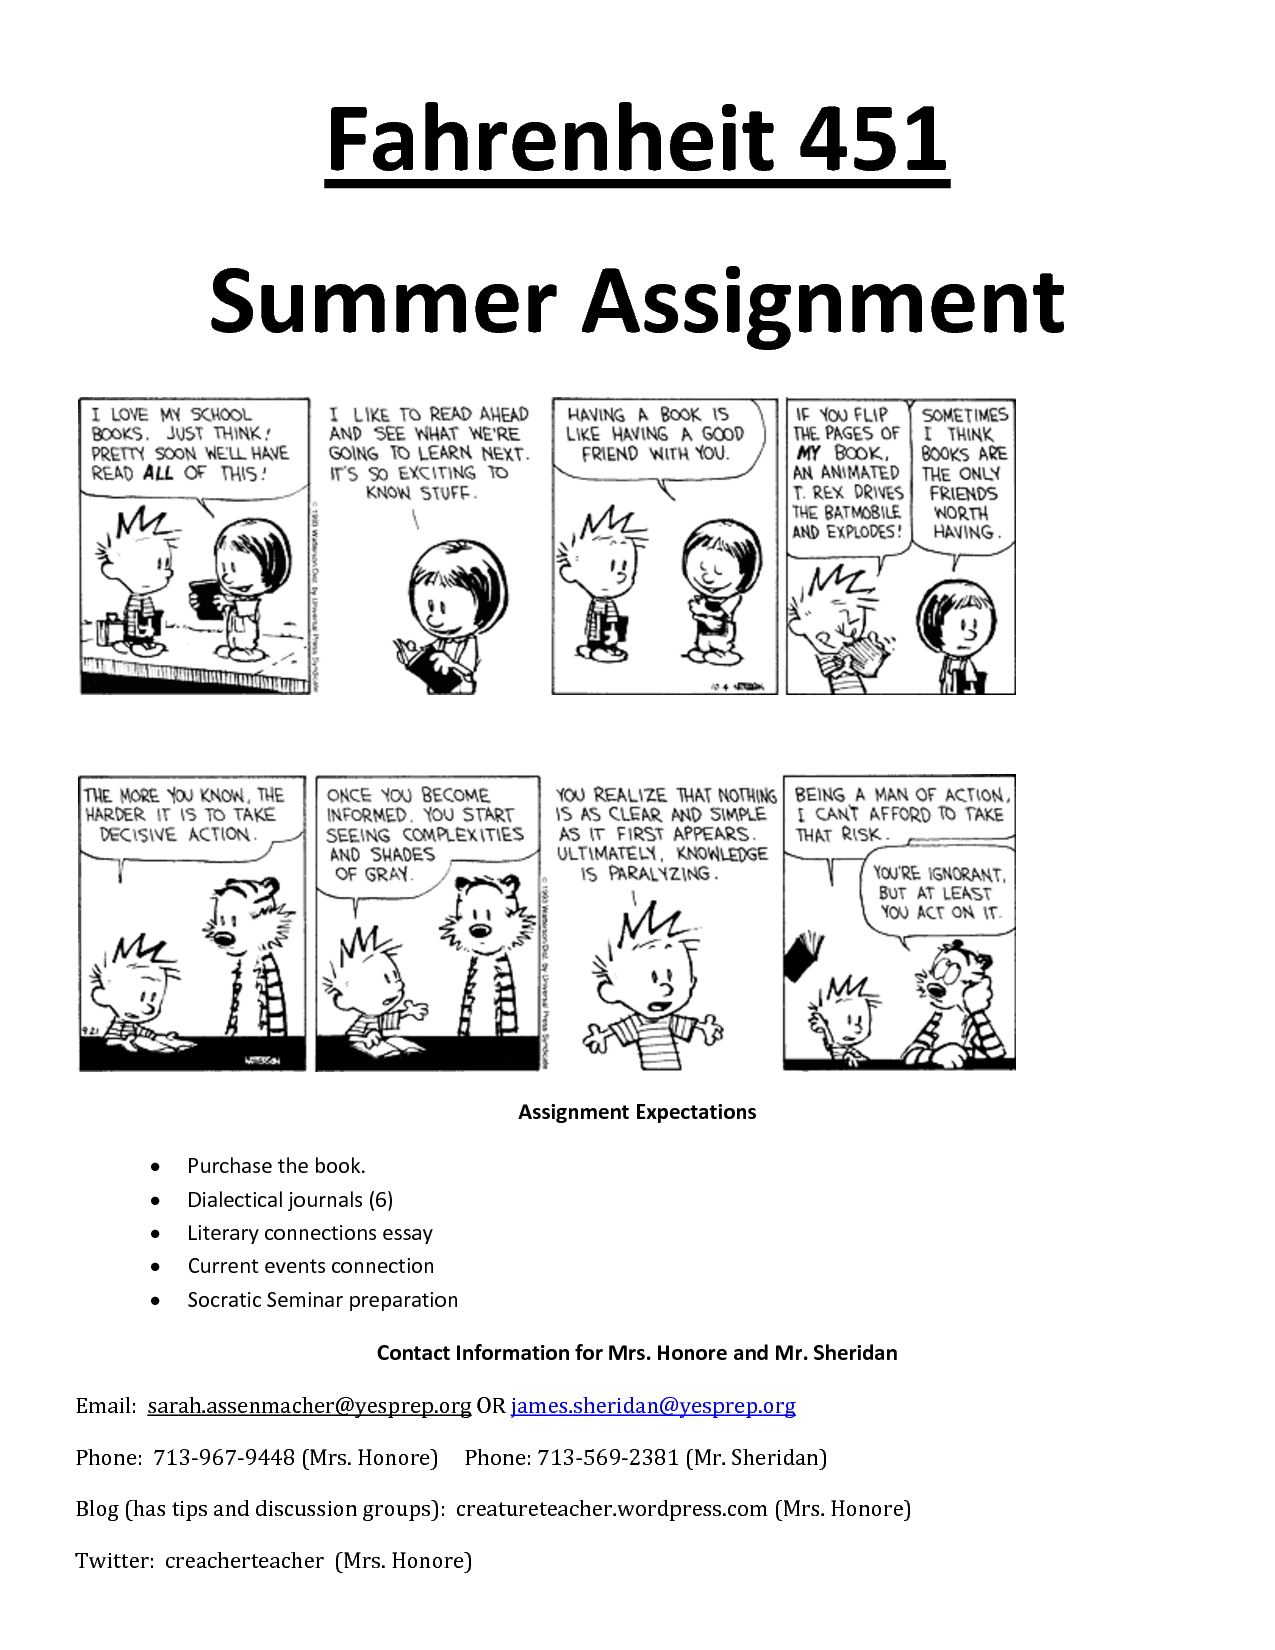 fahrenheit theme essay fahrenheit analysis essayfahrenheit essays essay about failure is your best teacher book argumentative essay graphic organizer